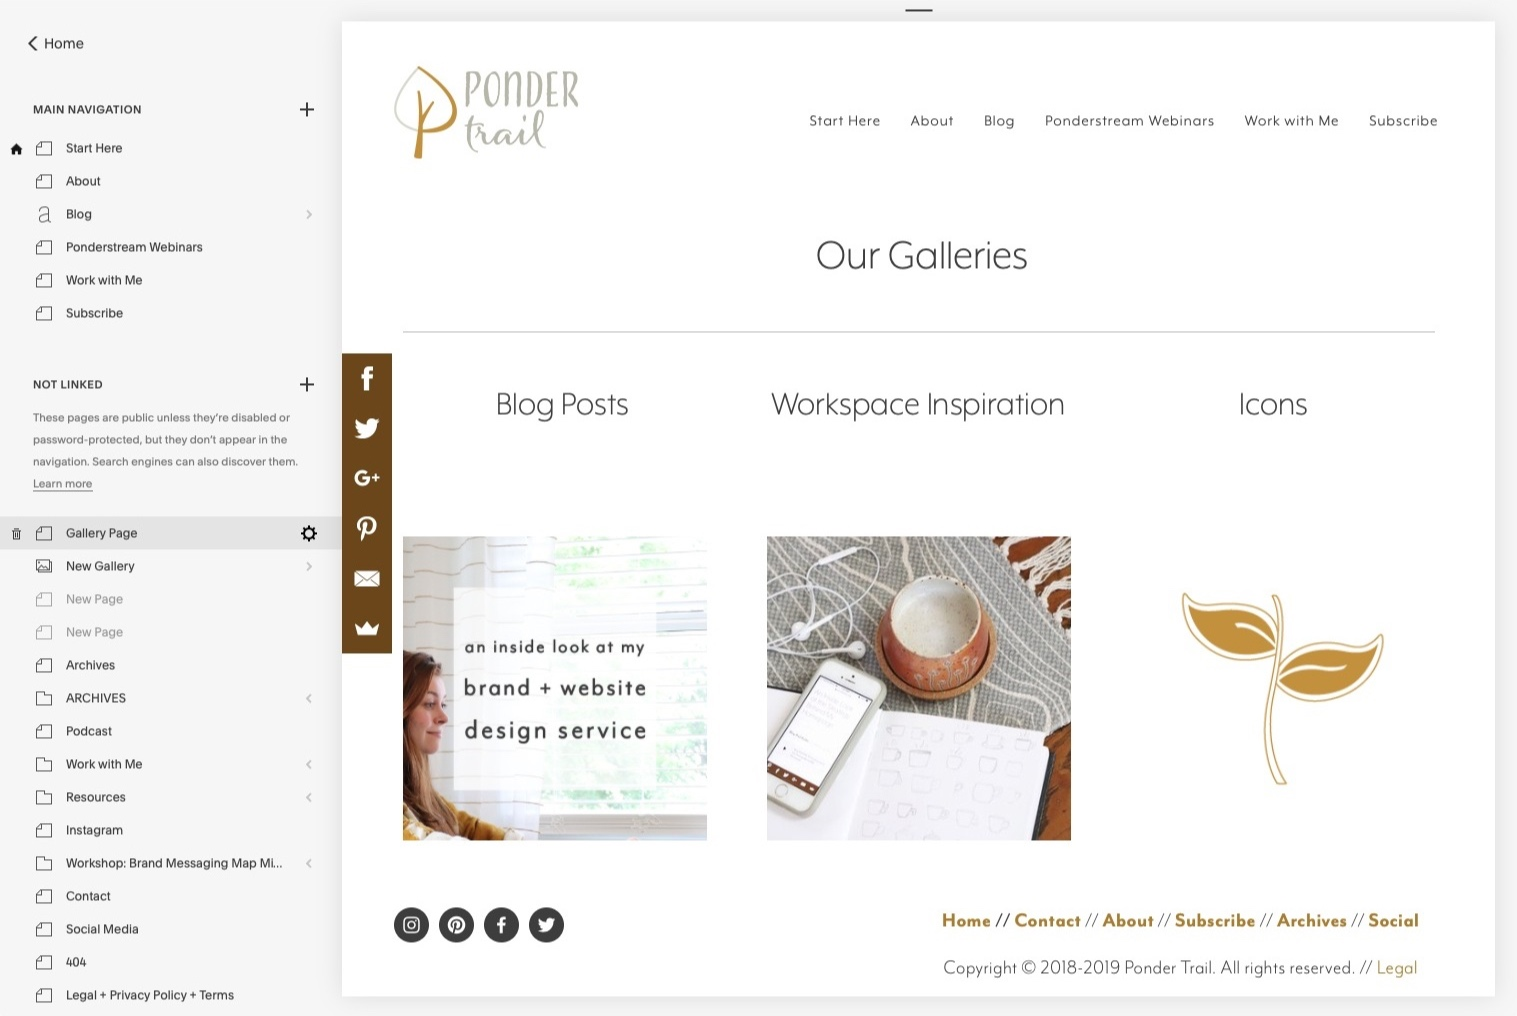 ponder trail Squarespace tips